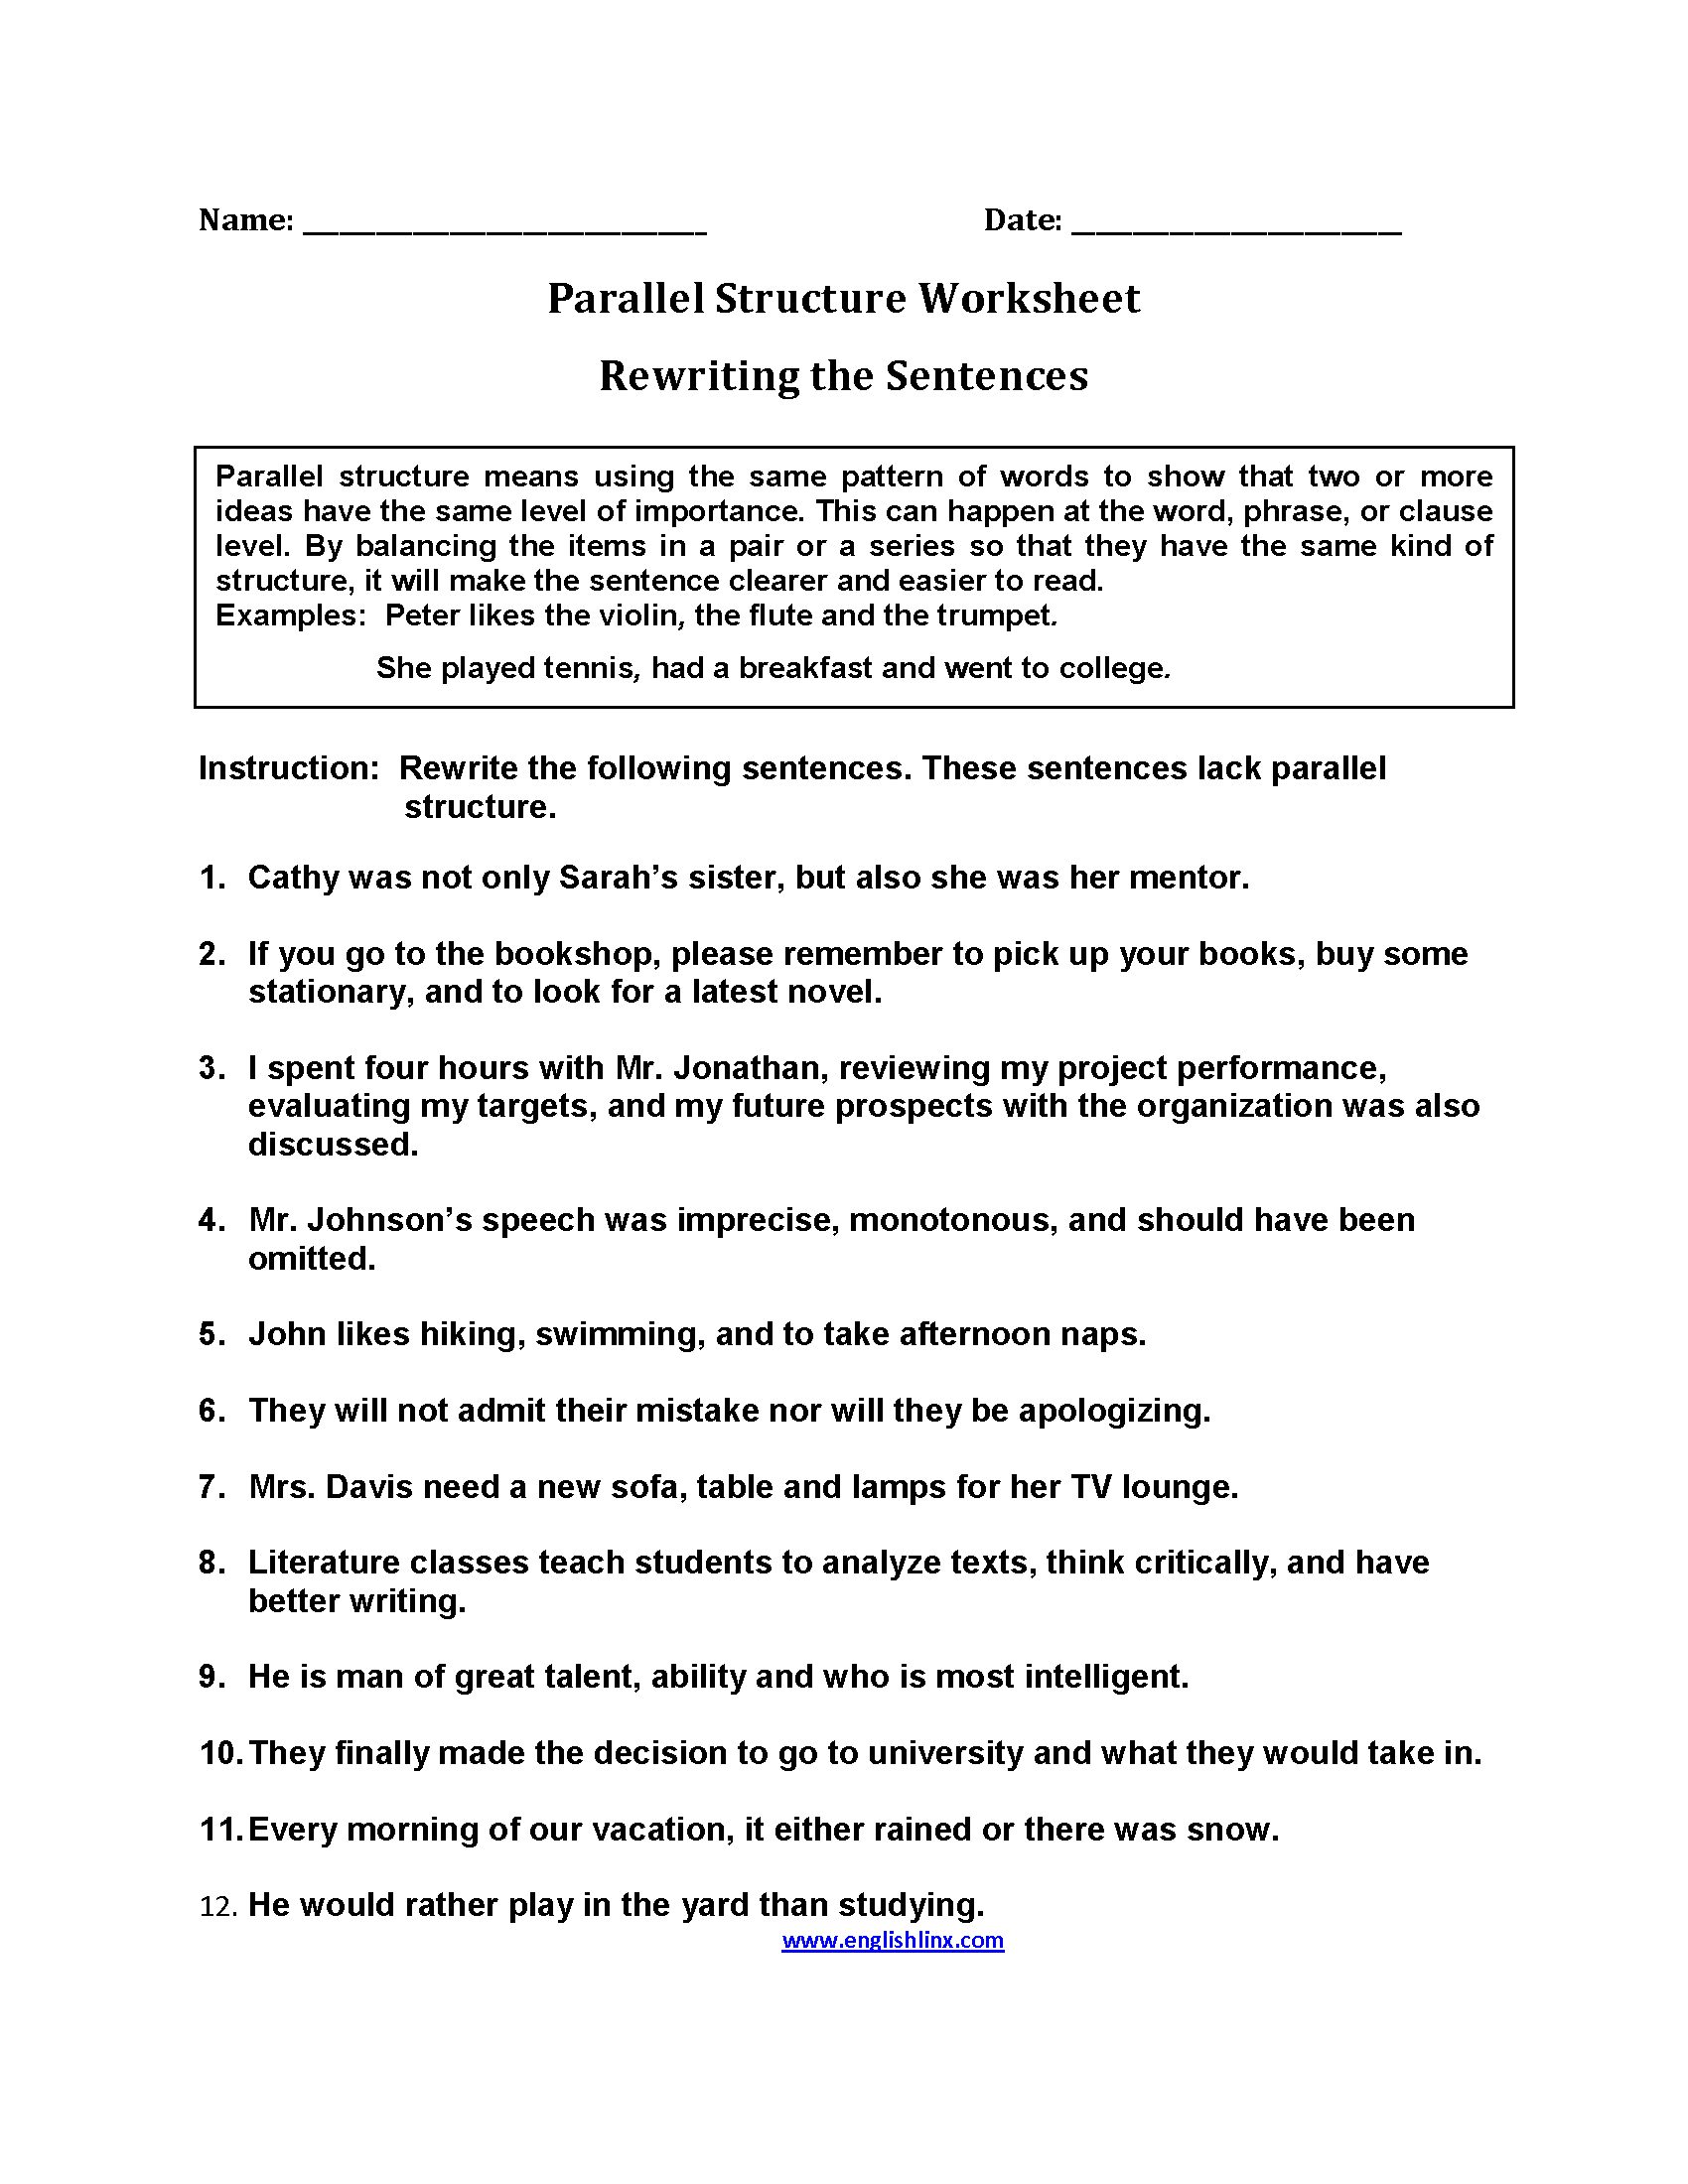 Parallel Structure Worksheets | Rewriting Sentences Parallel ...